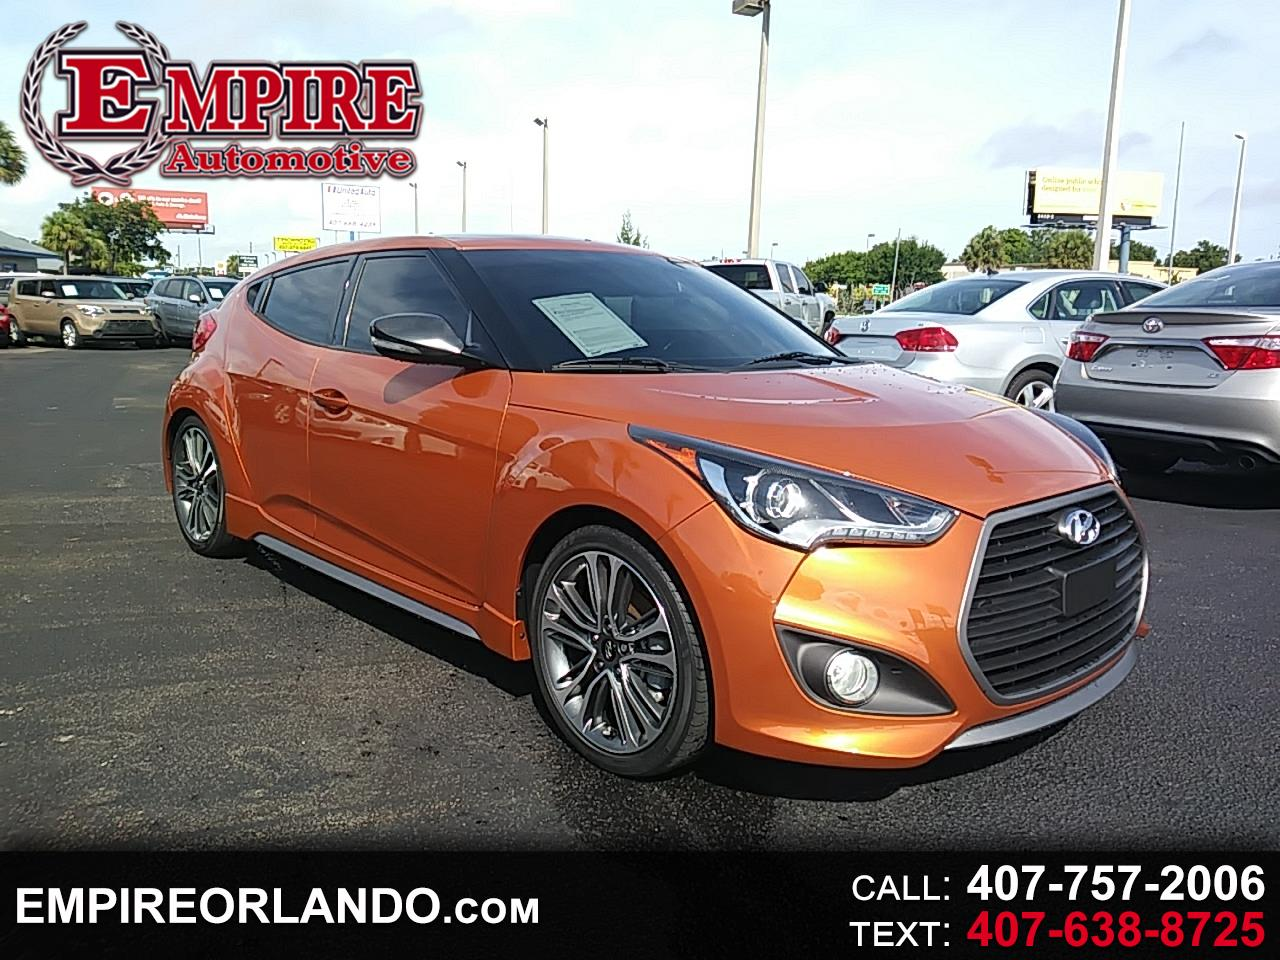 Hyundai Veloster 3dr Cpe Man Turbo w/Orange Accent 2016